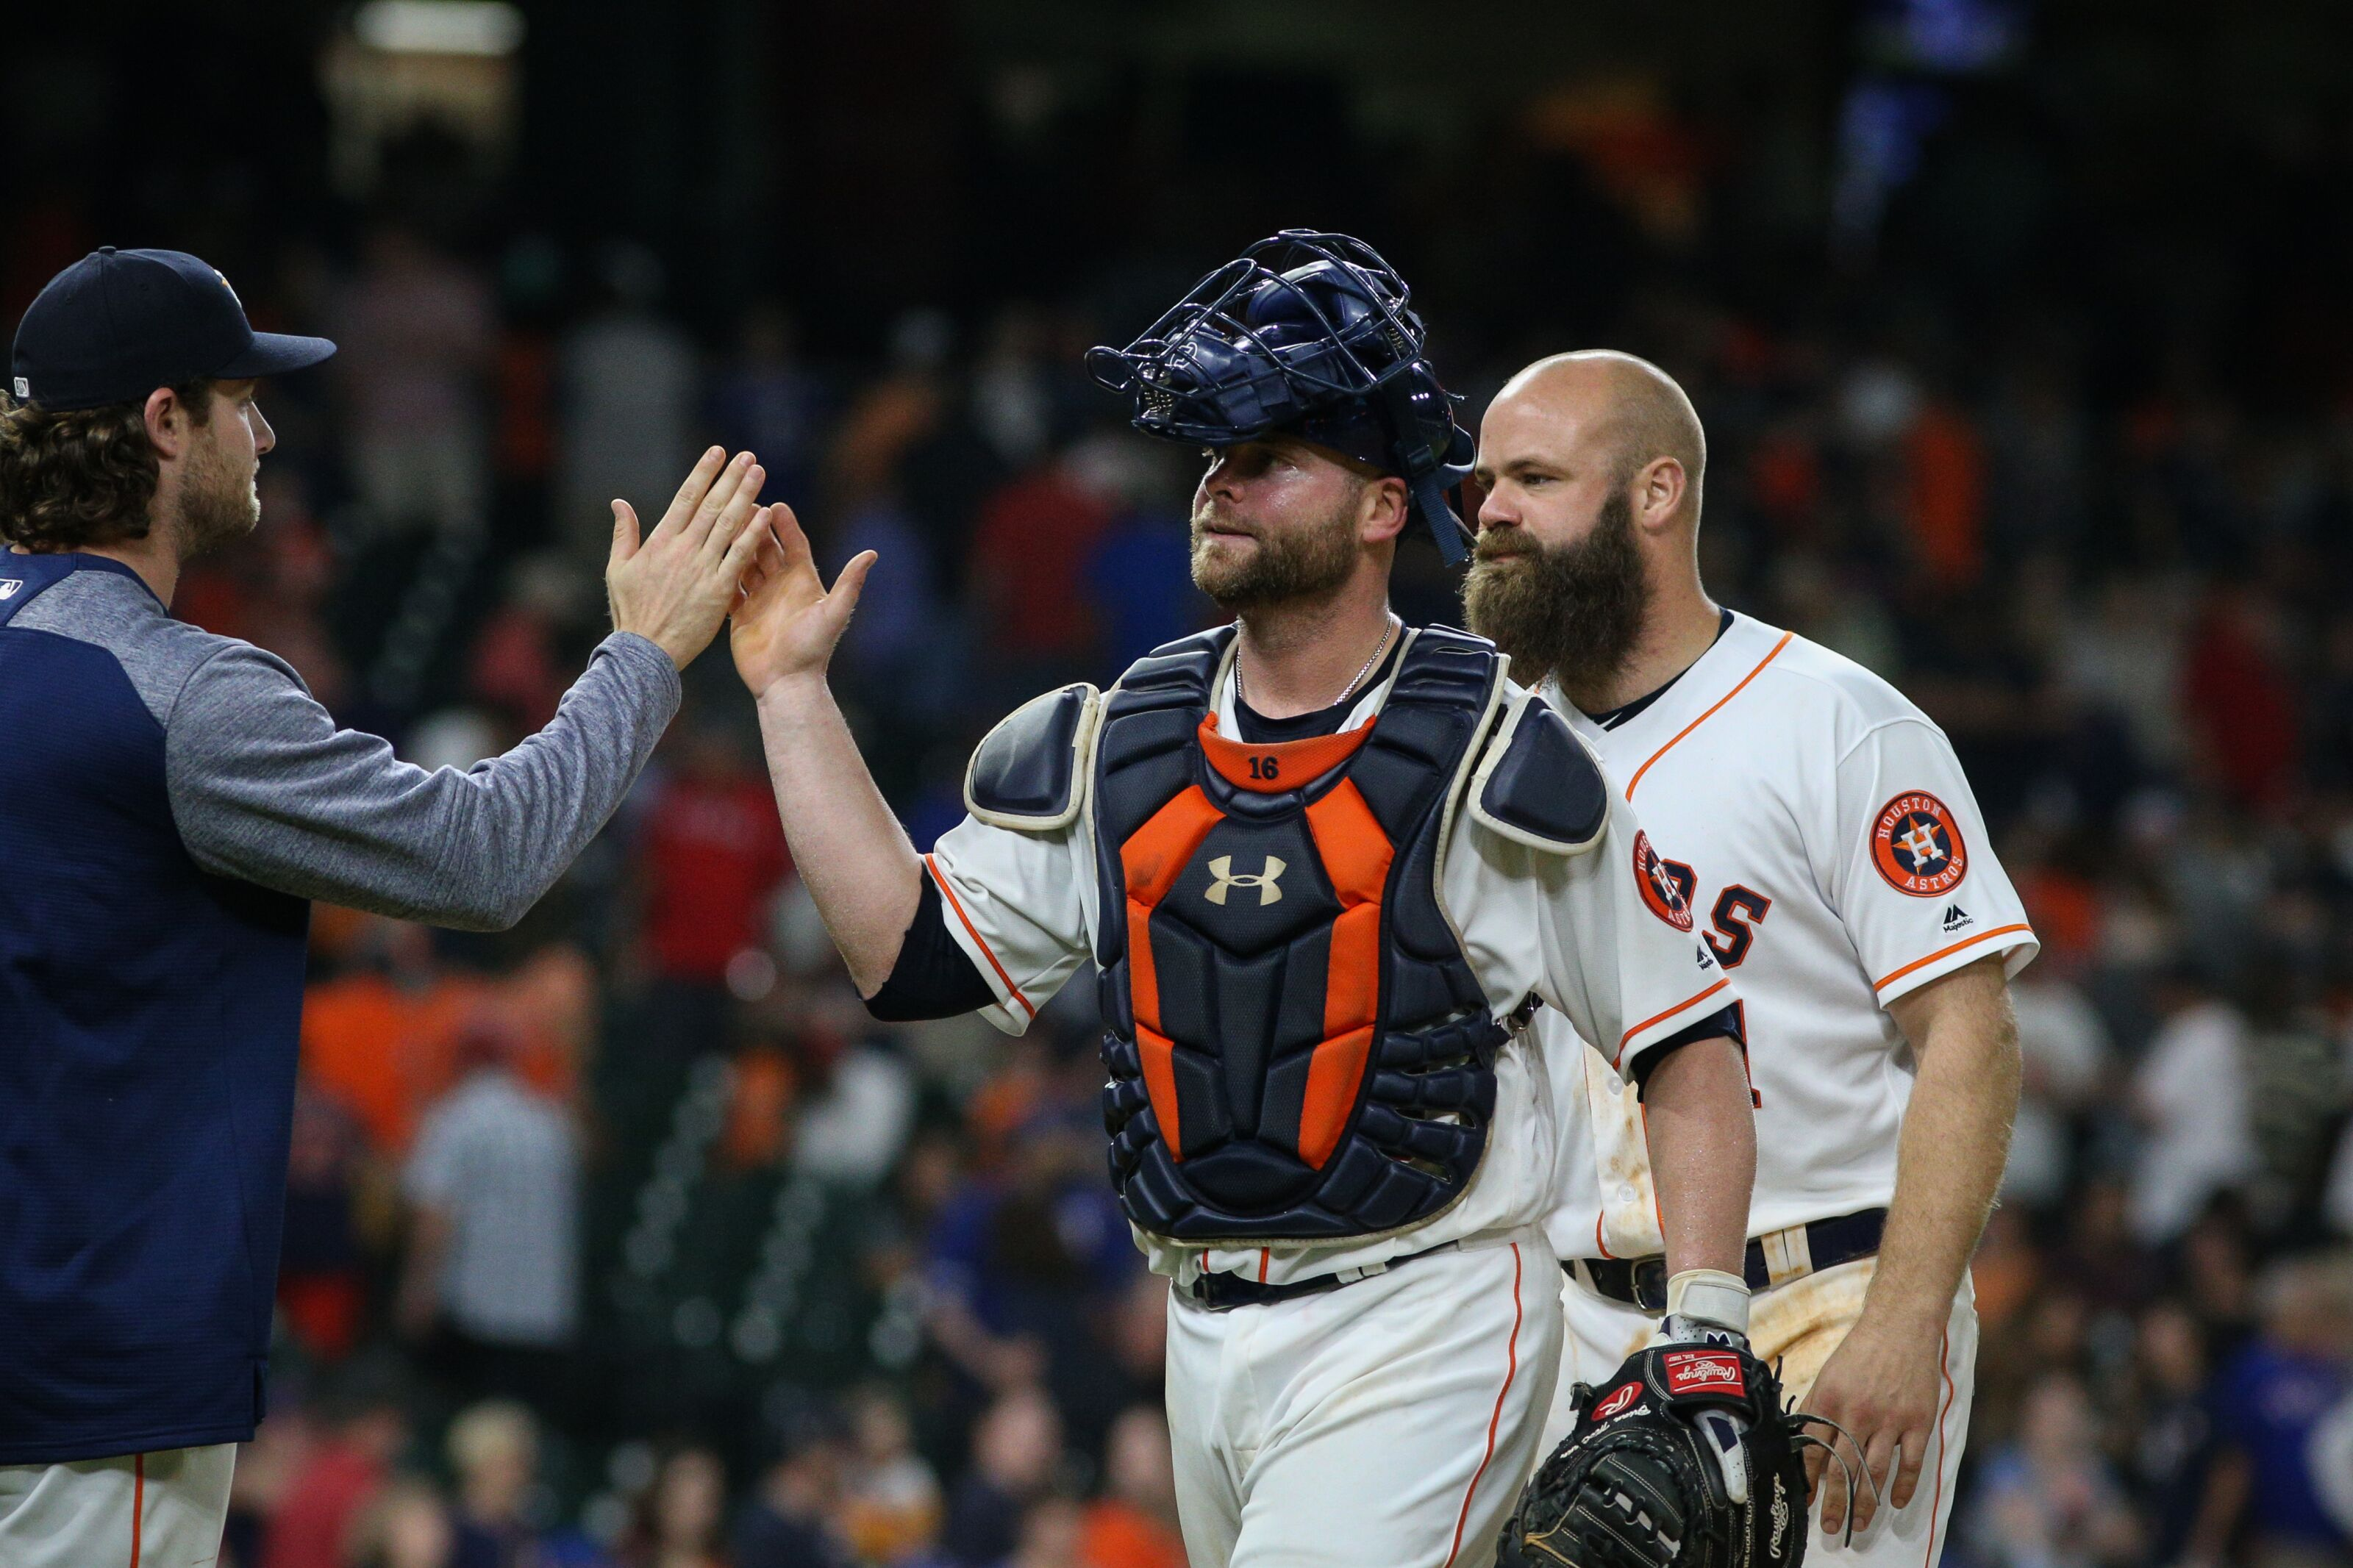 Houston Astros: A tip of the cap to Brian McCann's retirement